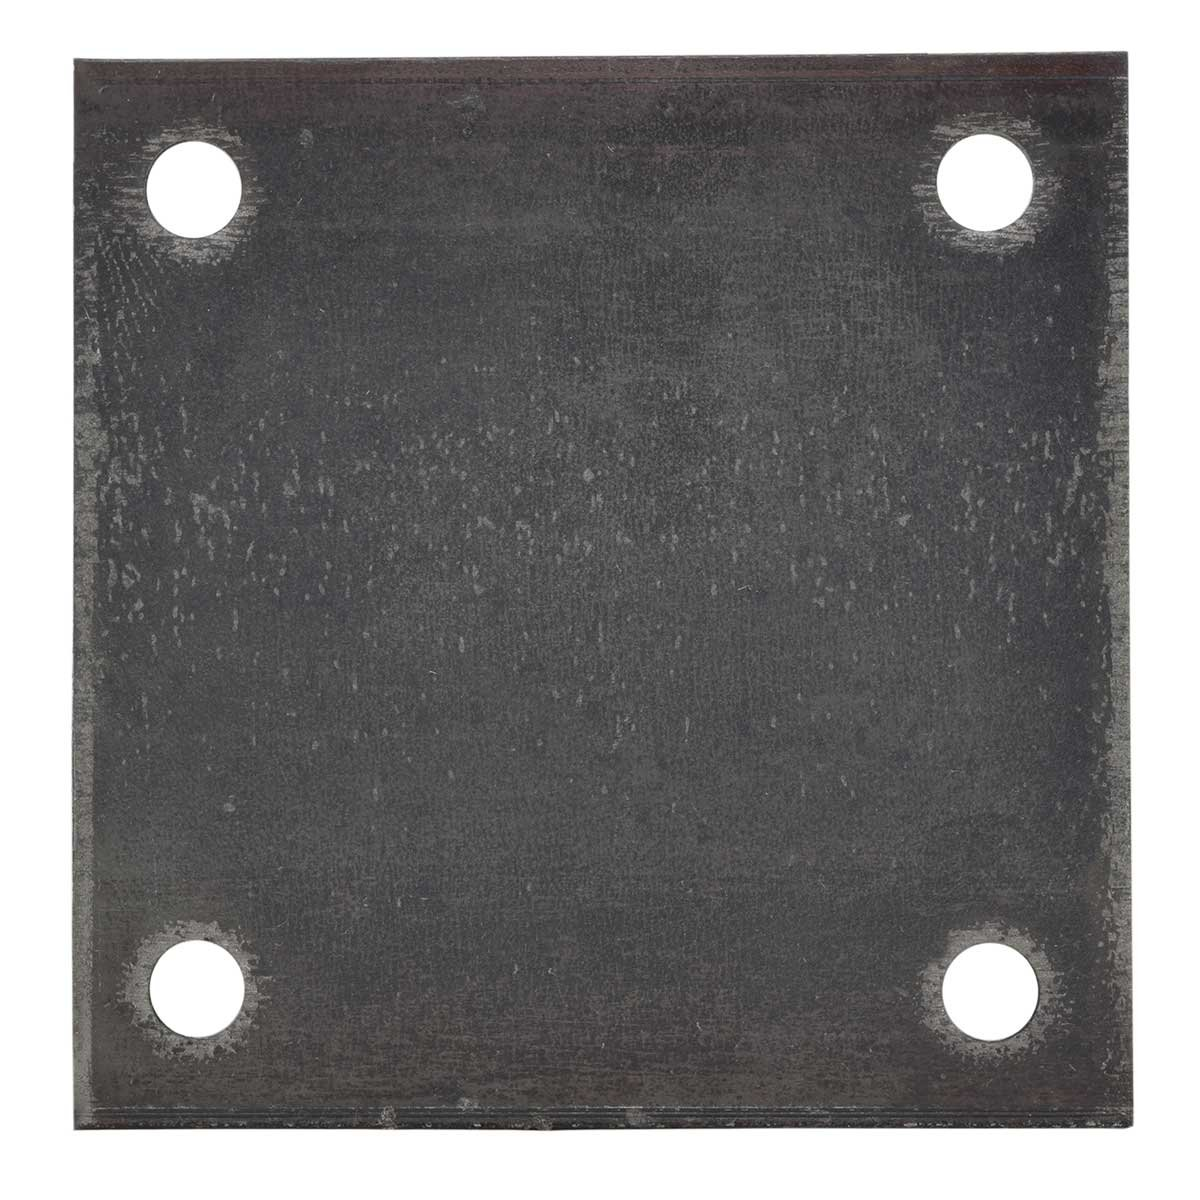 6'' x 6'' x 1/4'' Hot Rolled A36 Steel Base Plate with (4) 9/16'' Holes for 1/2'' Bolts - Custom Fabricated by Joseph Fazzio Inc